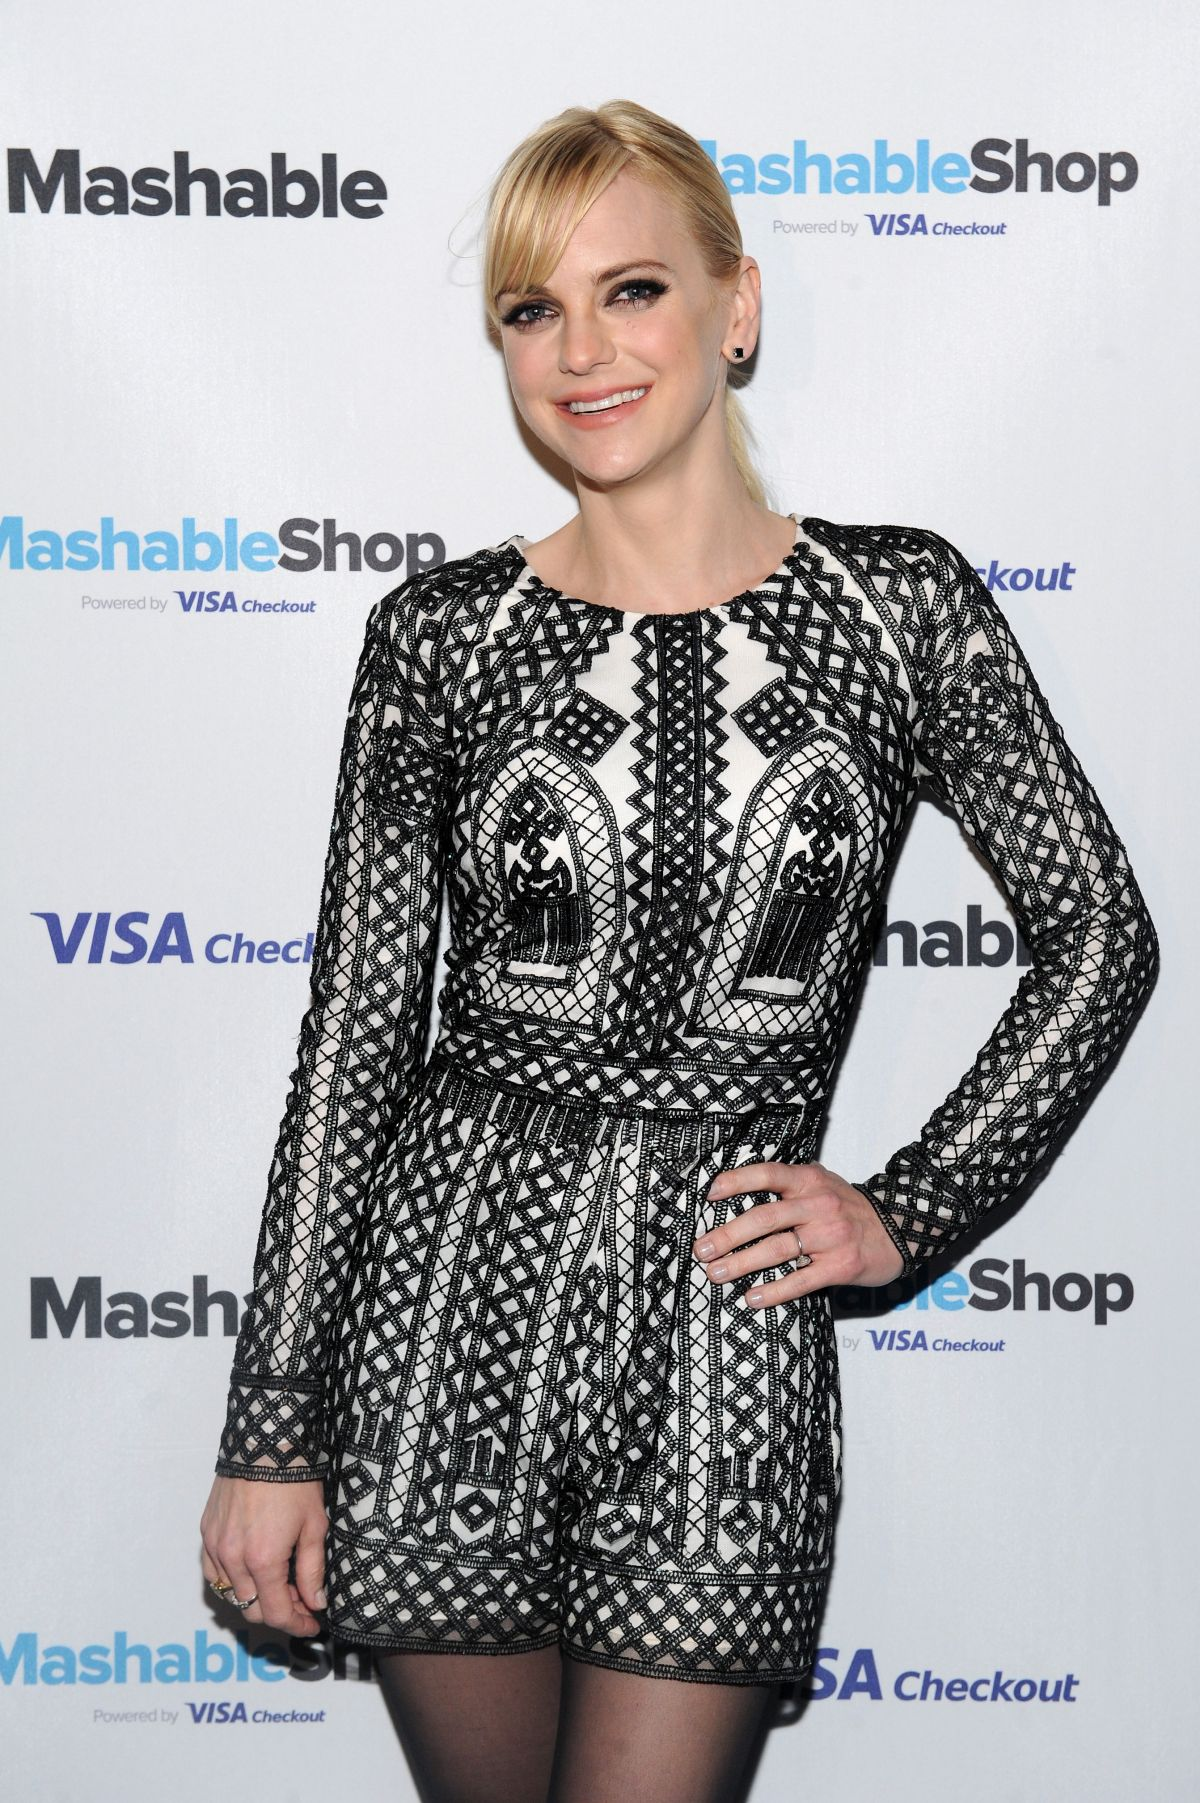 anna-faris-at-mashable-shop-launch-event-in-new-york-12-15-2015_1